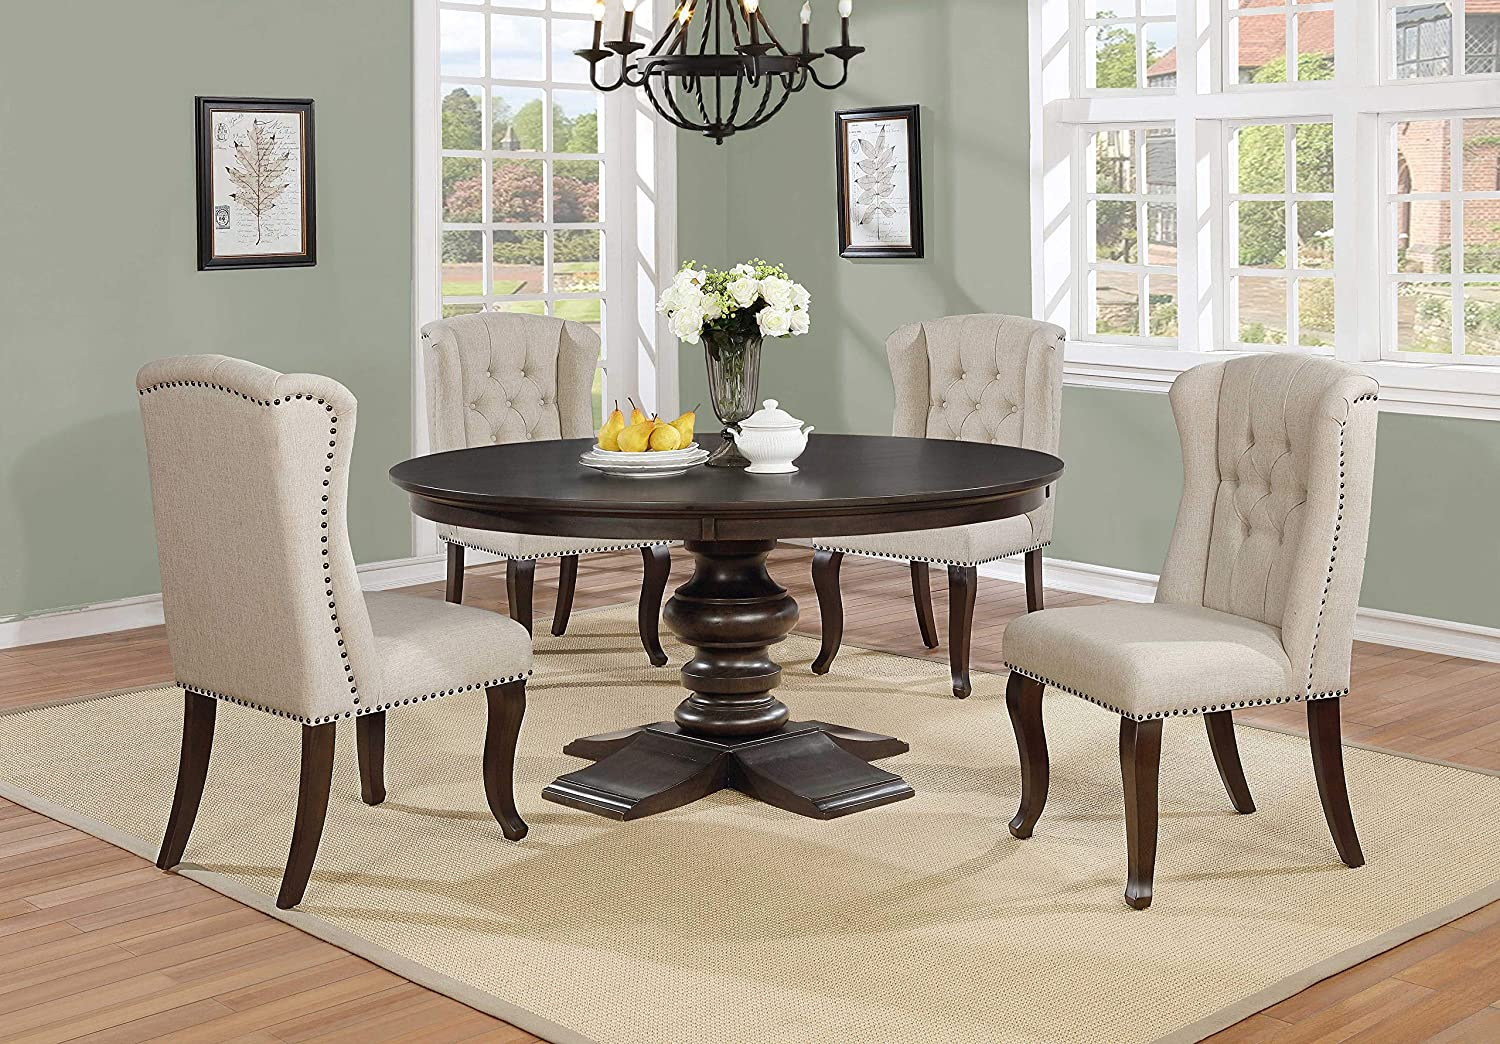 Best Quality Furniture Dining Round Table Single Wood, Cappuccino